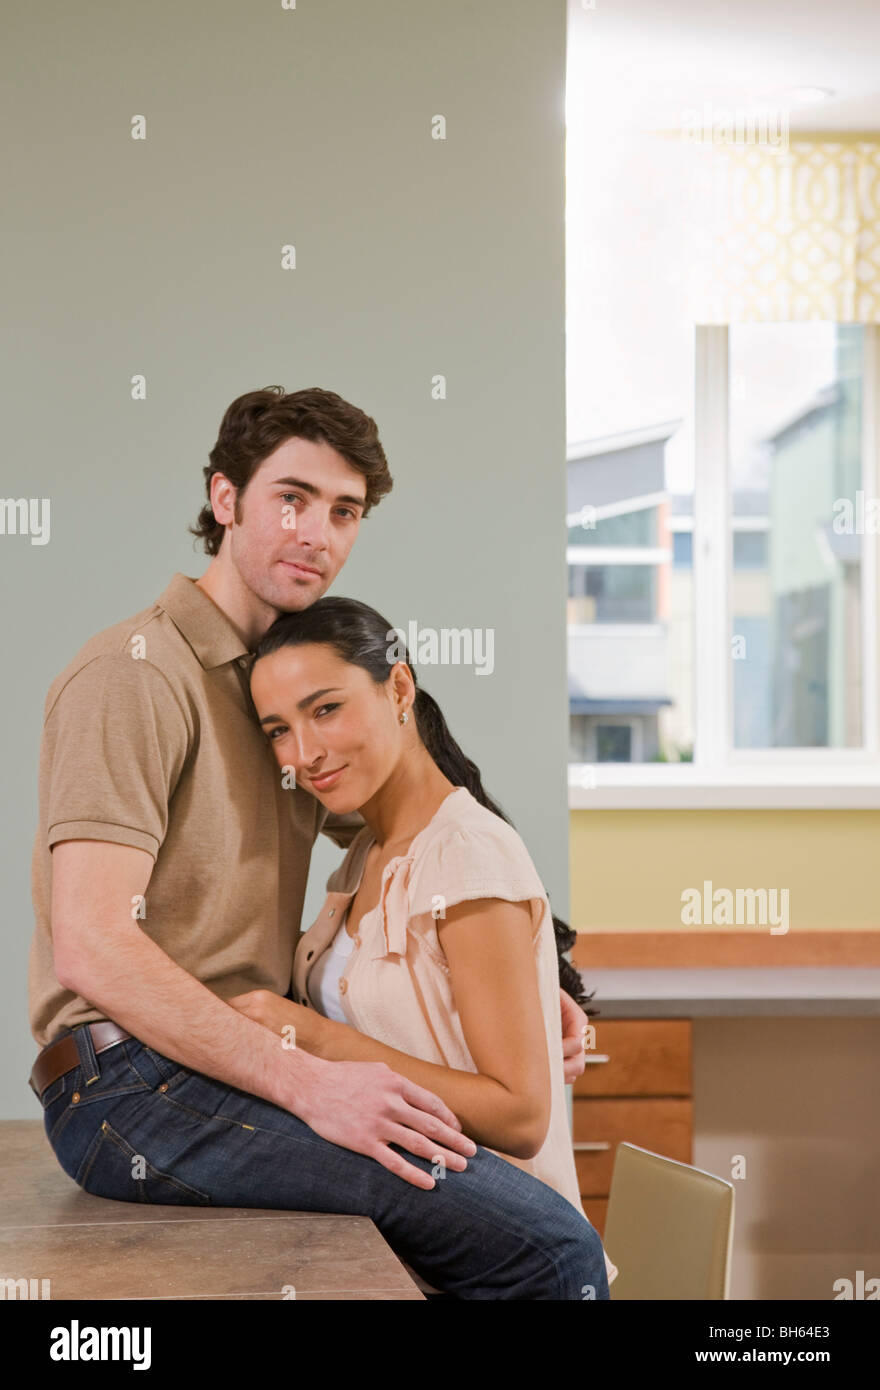 couple talking in kitchen - Stock Image